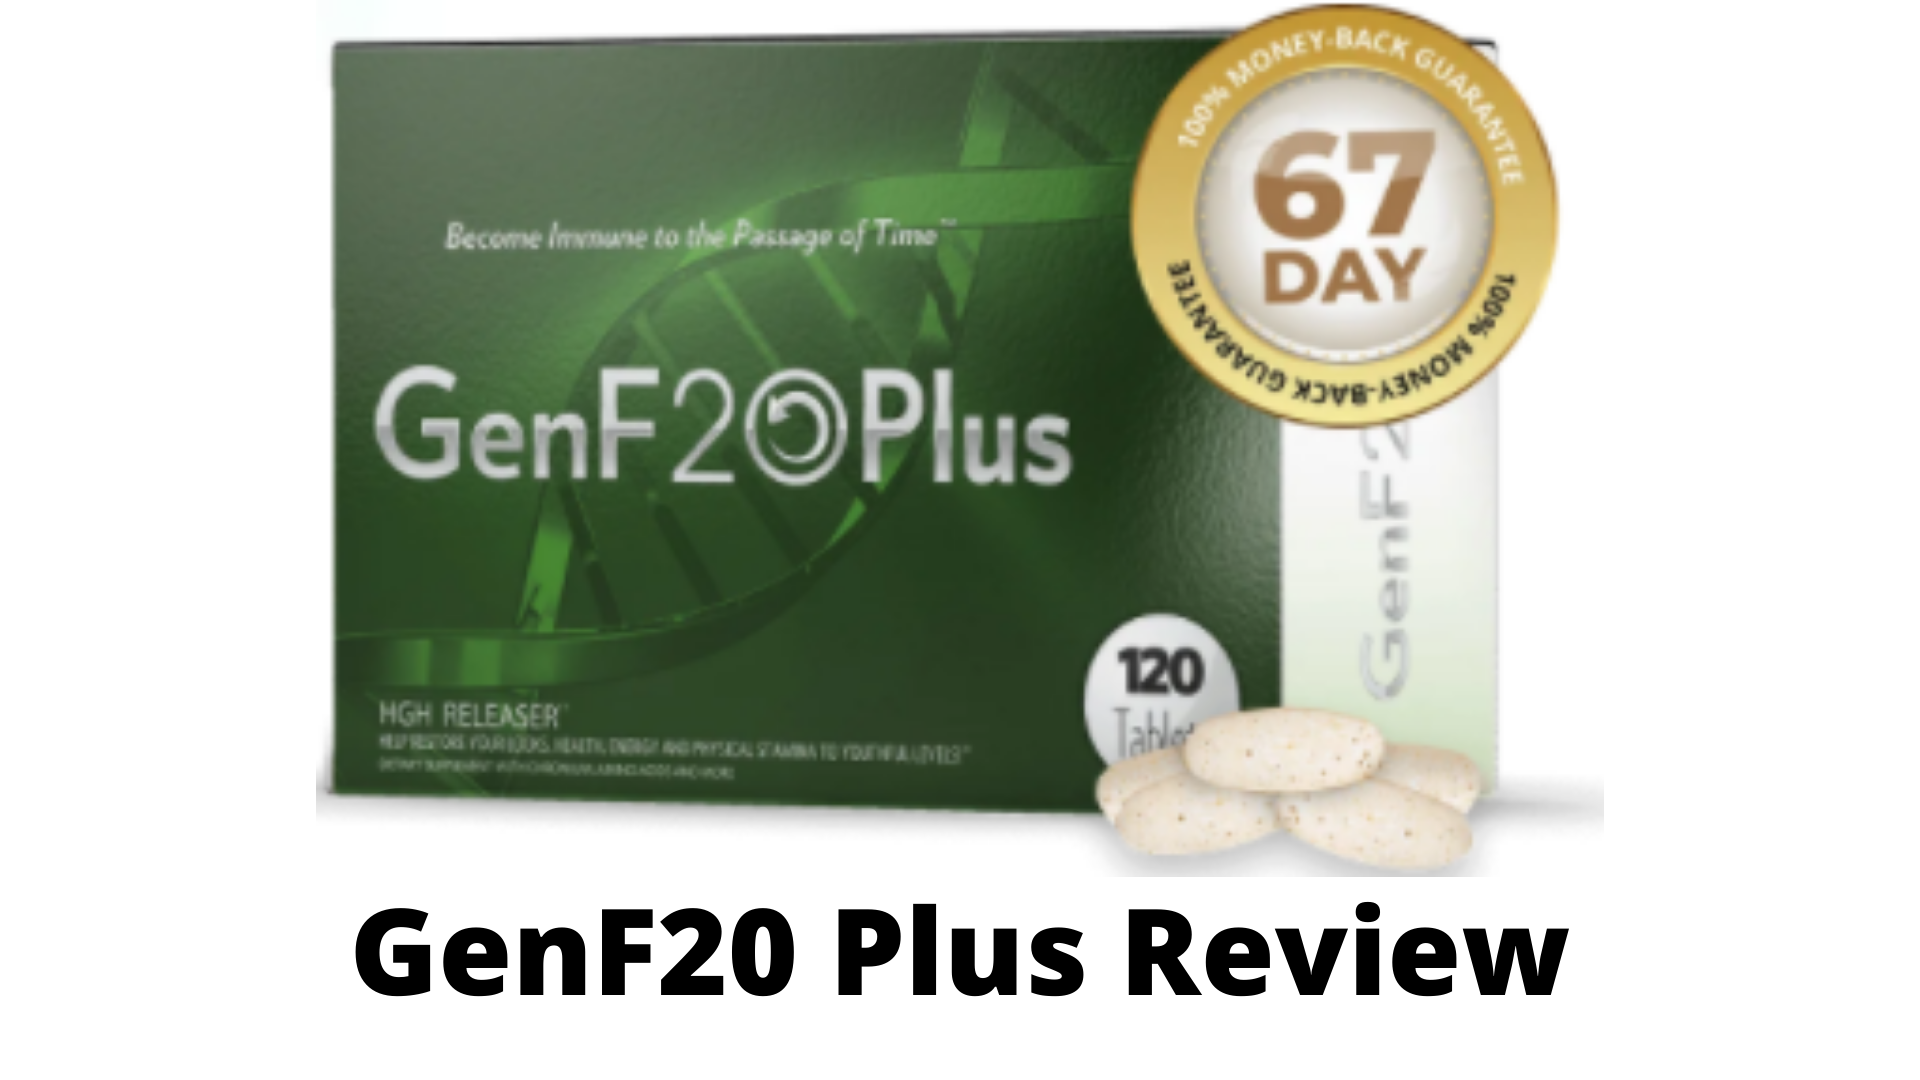 GenF20 Plus Reviews-Best human growth hormone?